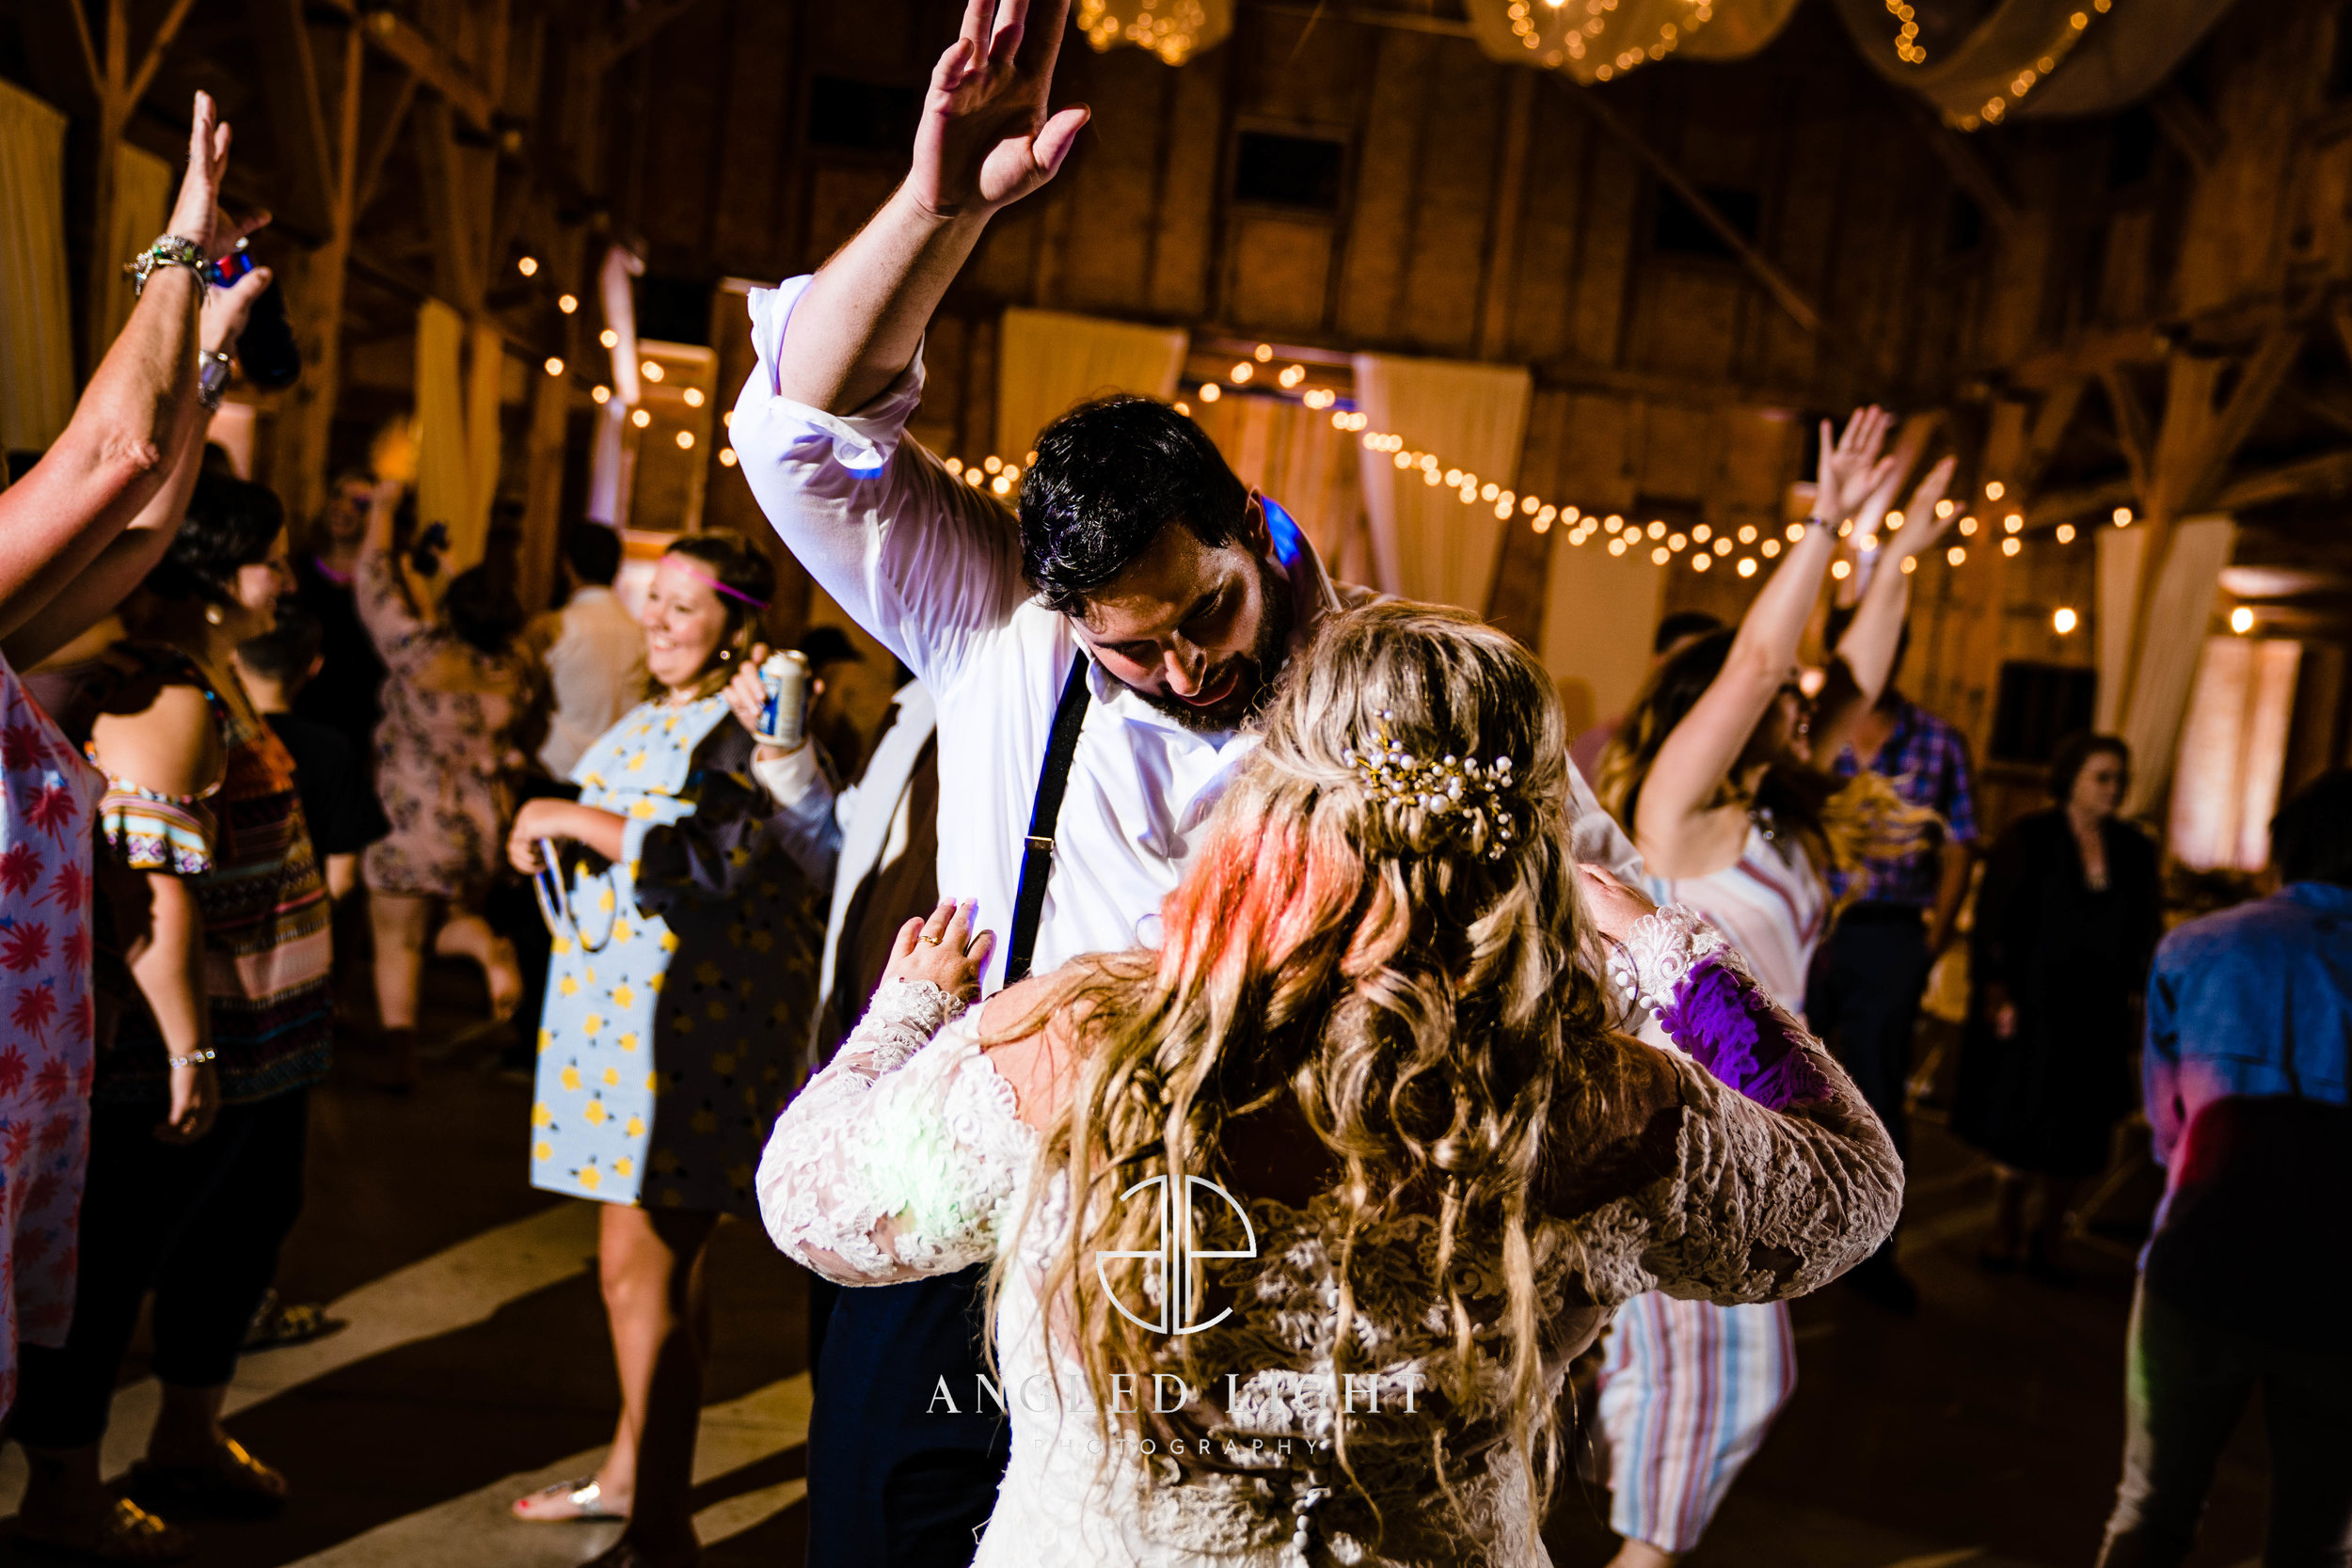 Bride and groom dancing | The Barn at Greene Acres in Honea Path, SC